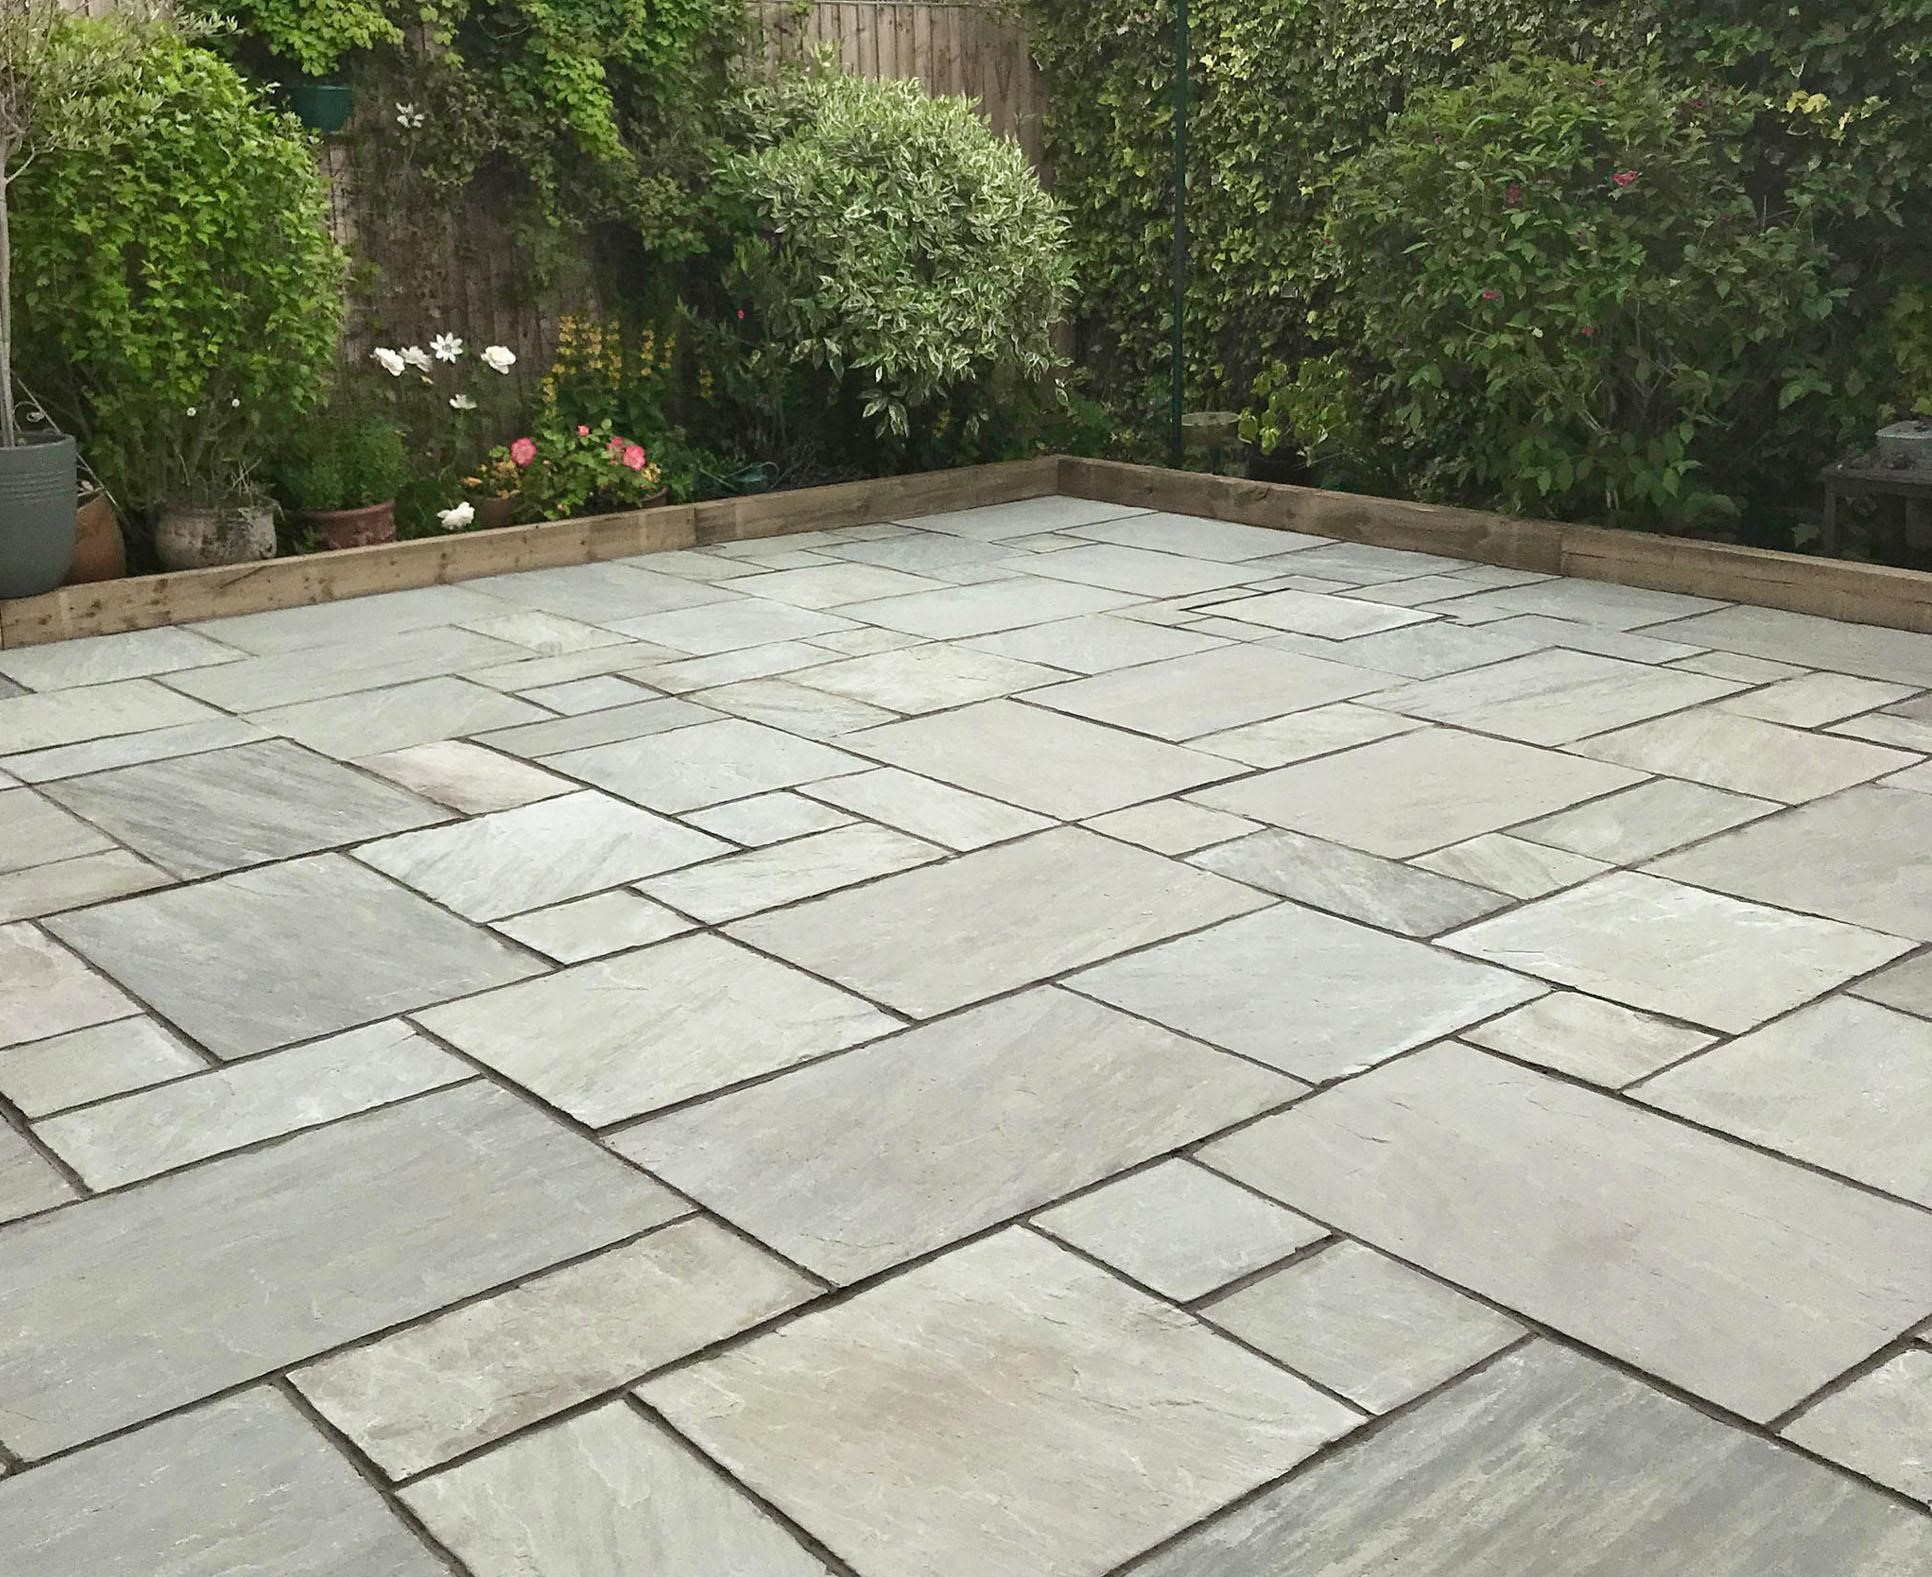 Open Up the Garden with New Paving